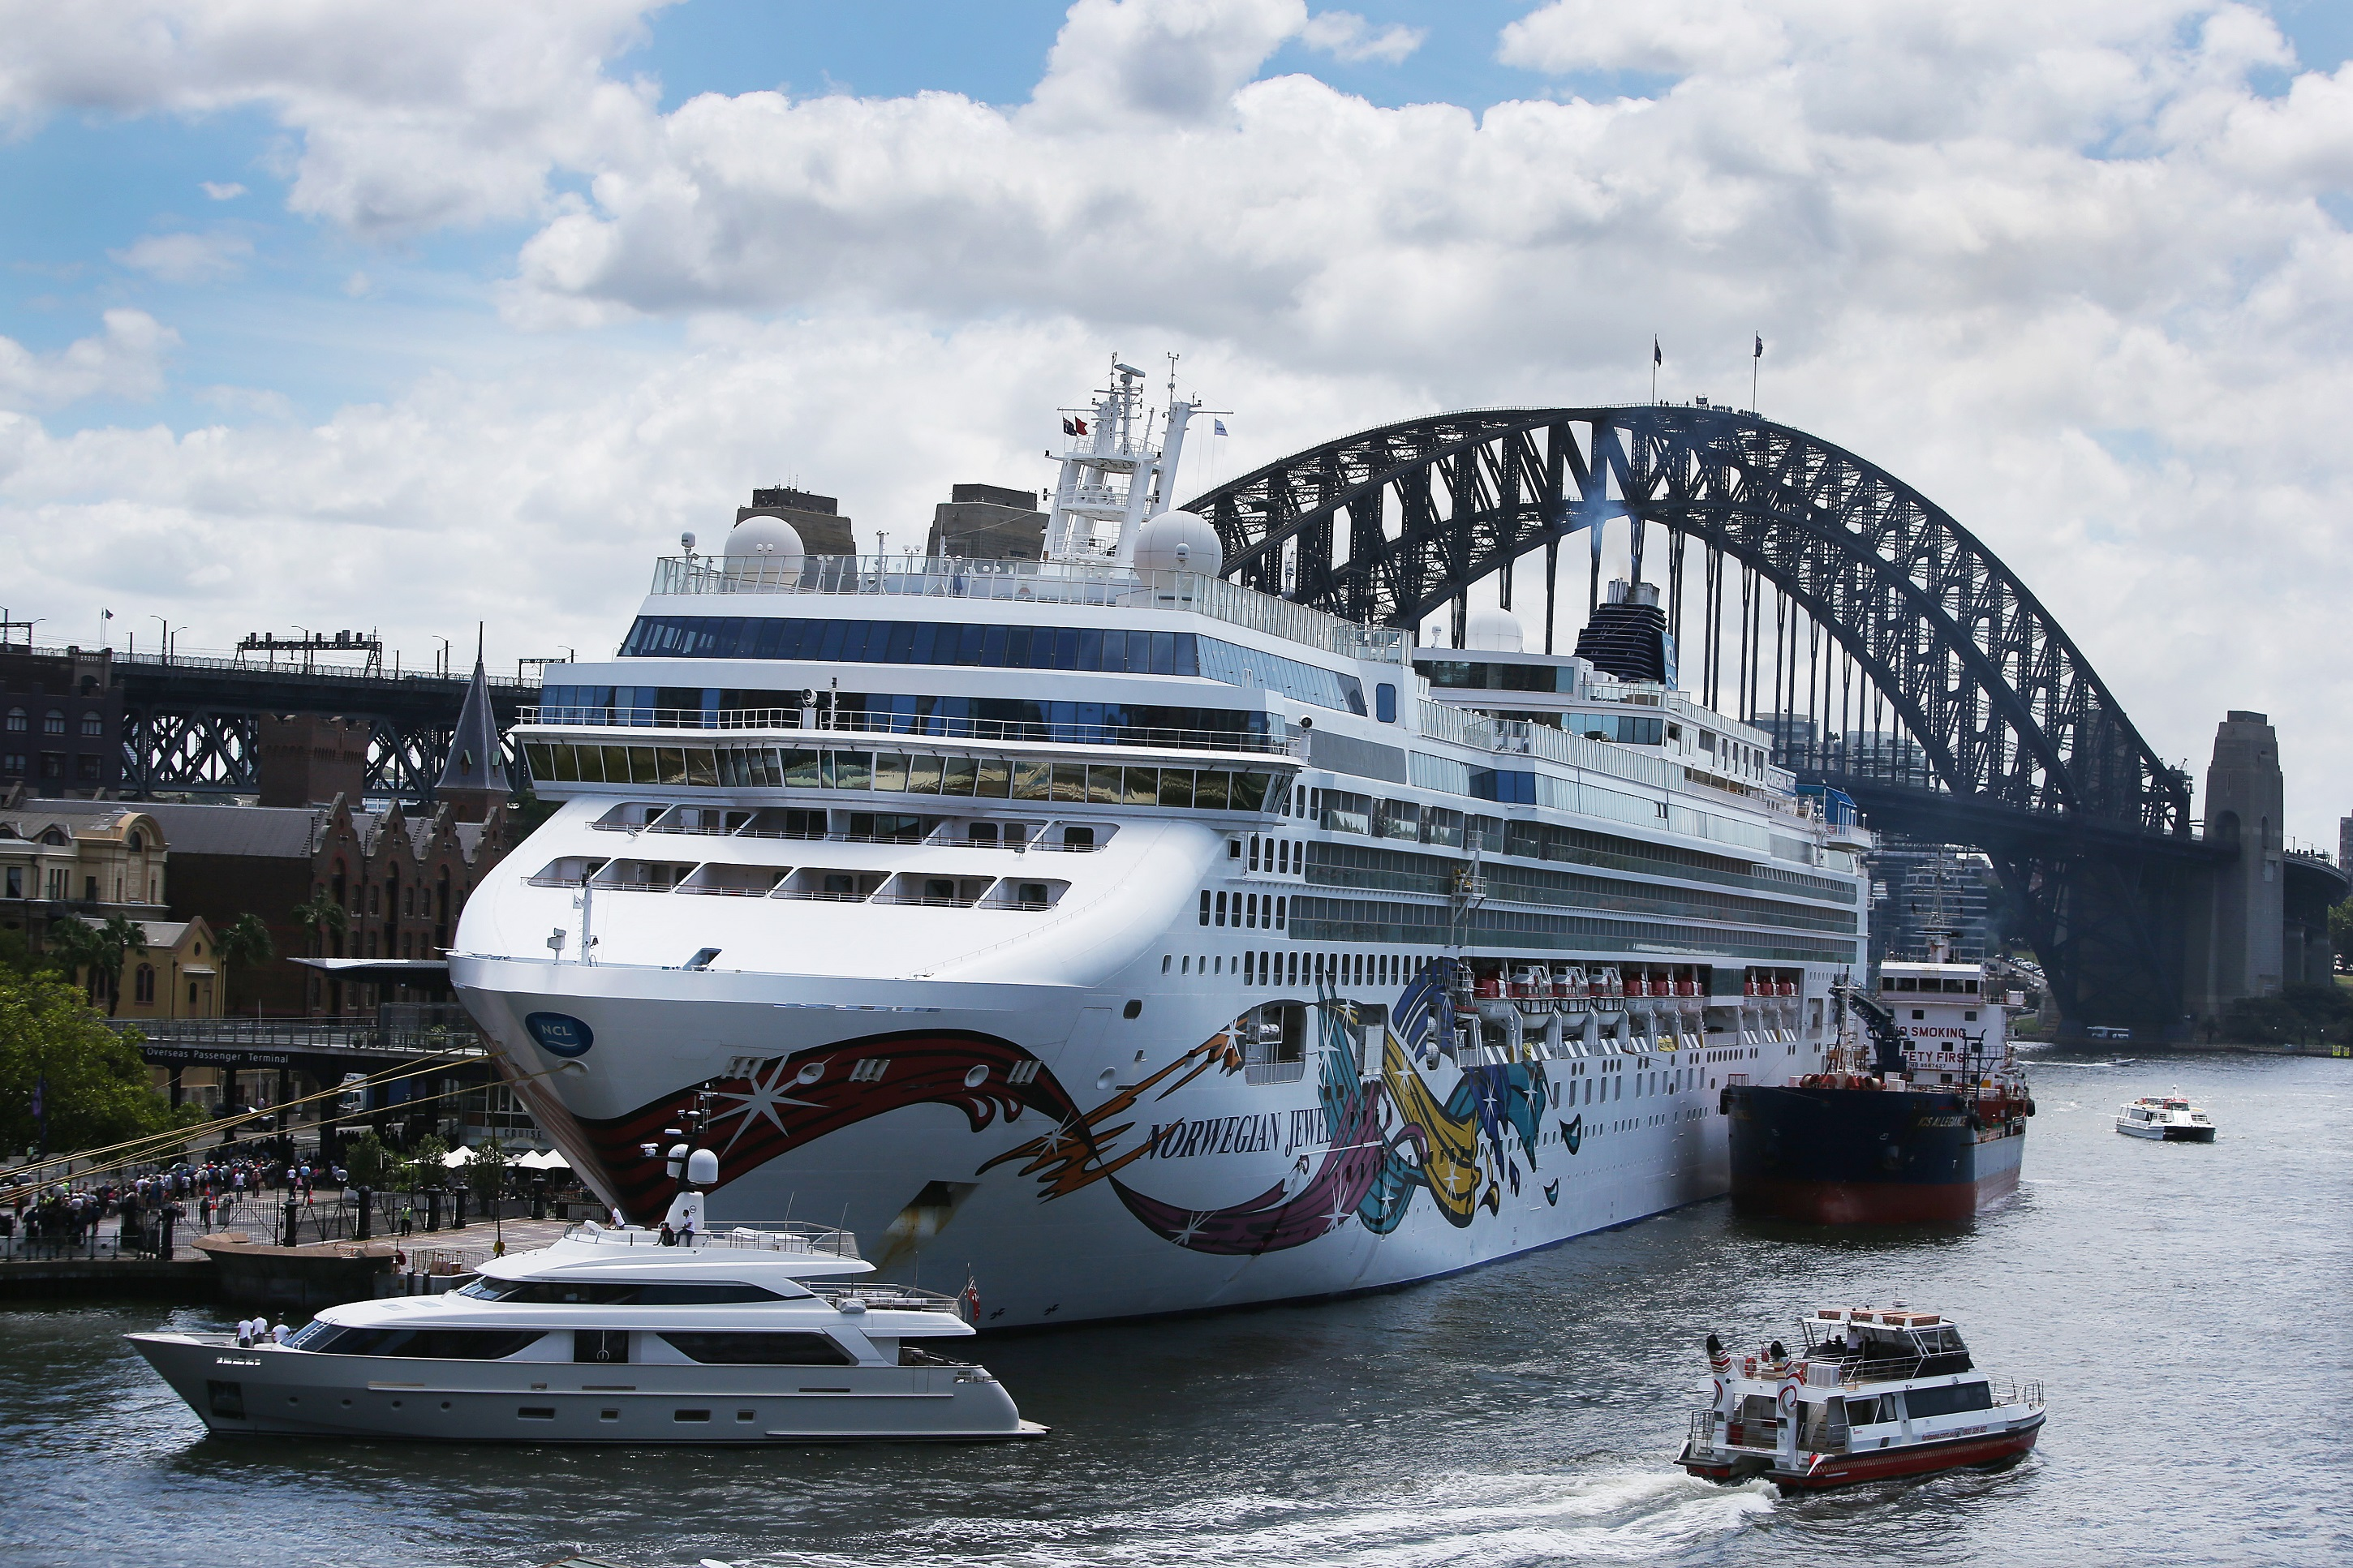 The Norwegian Jewel cruise ship is in lock down while health authorities test a man for Coronavirus in Sydney,